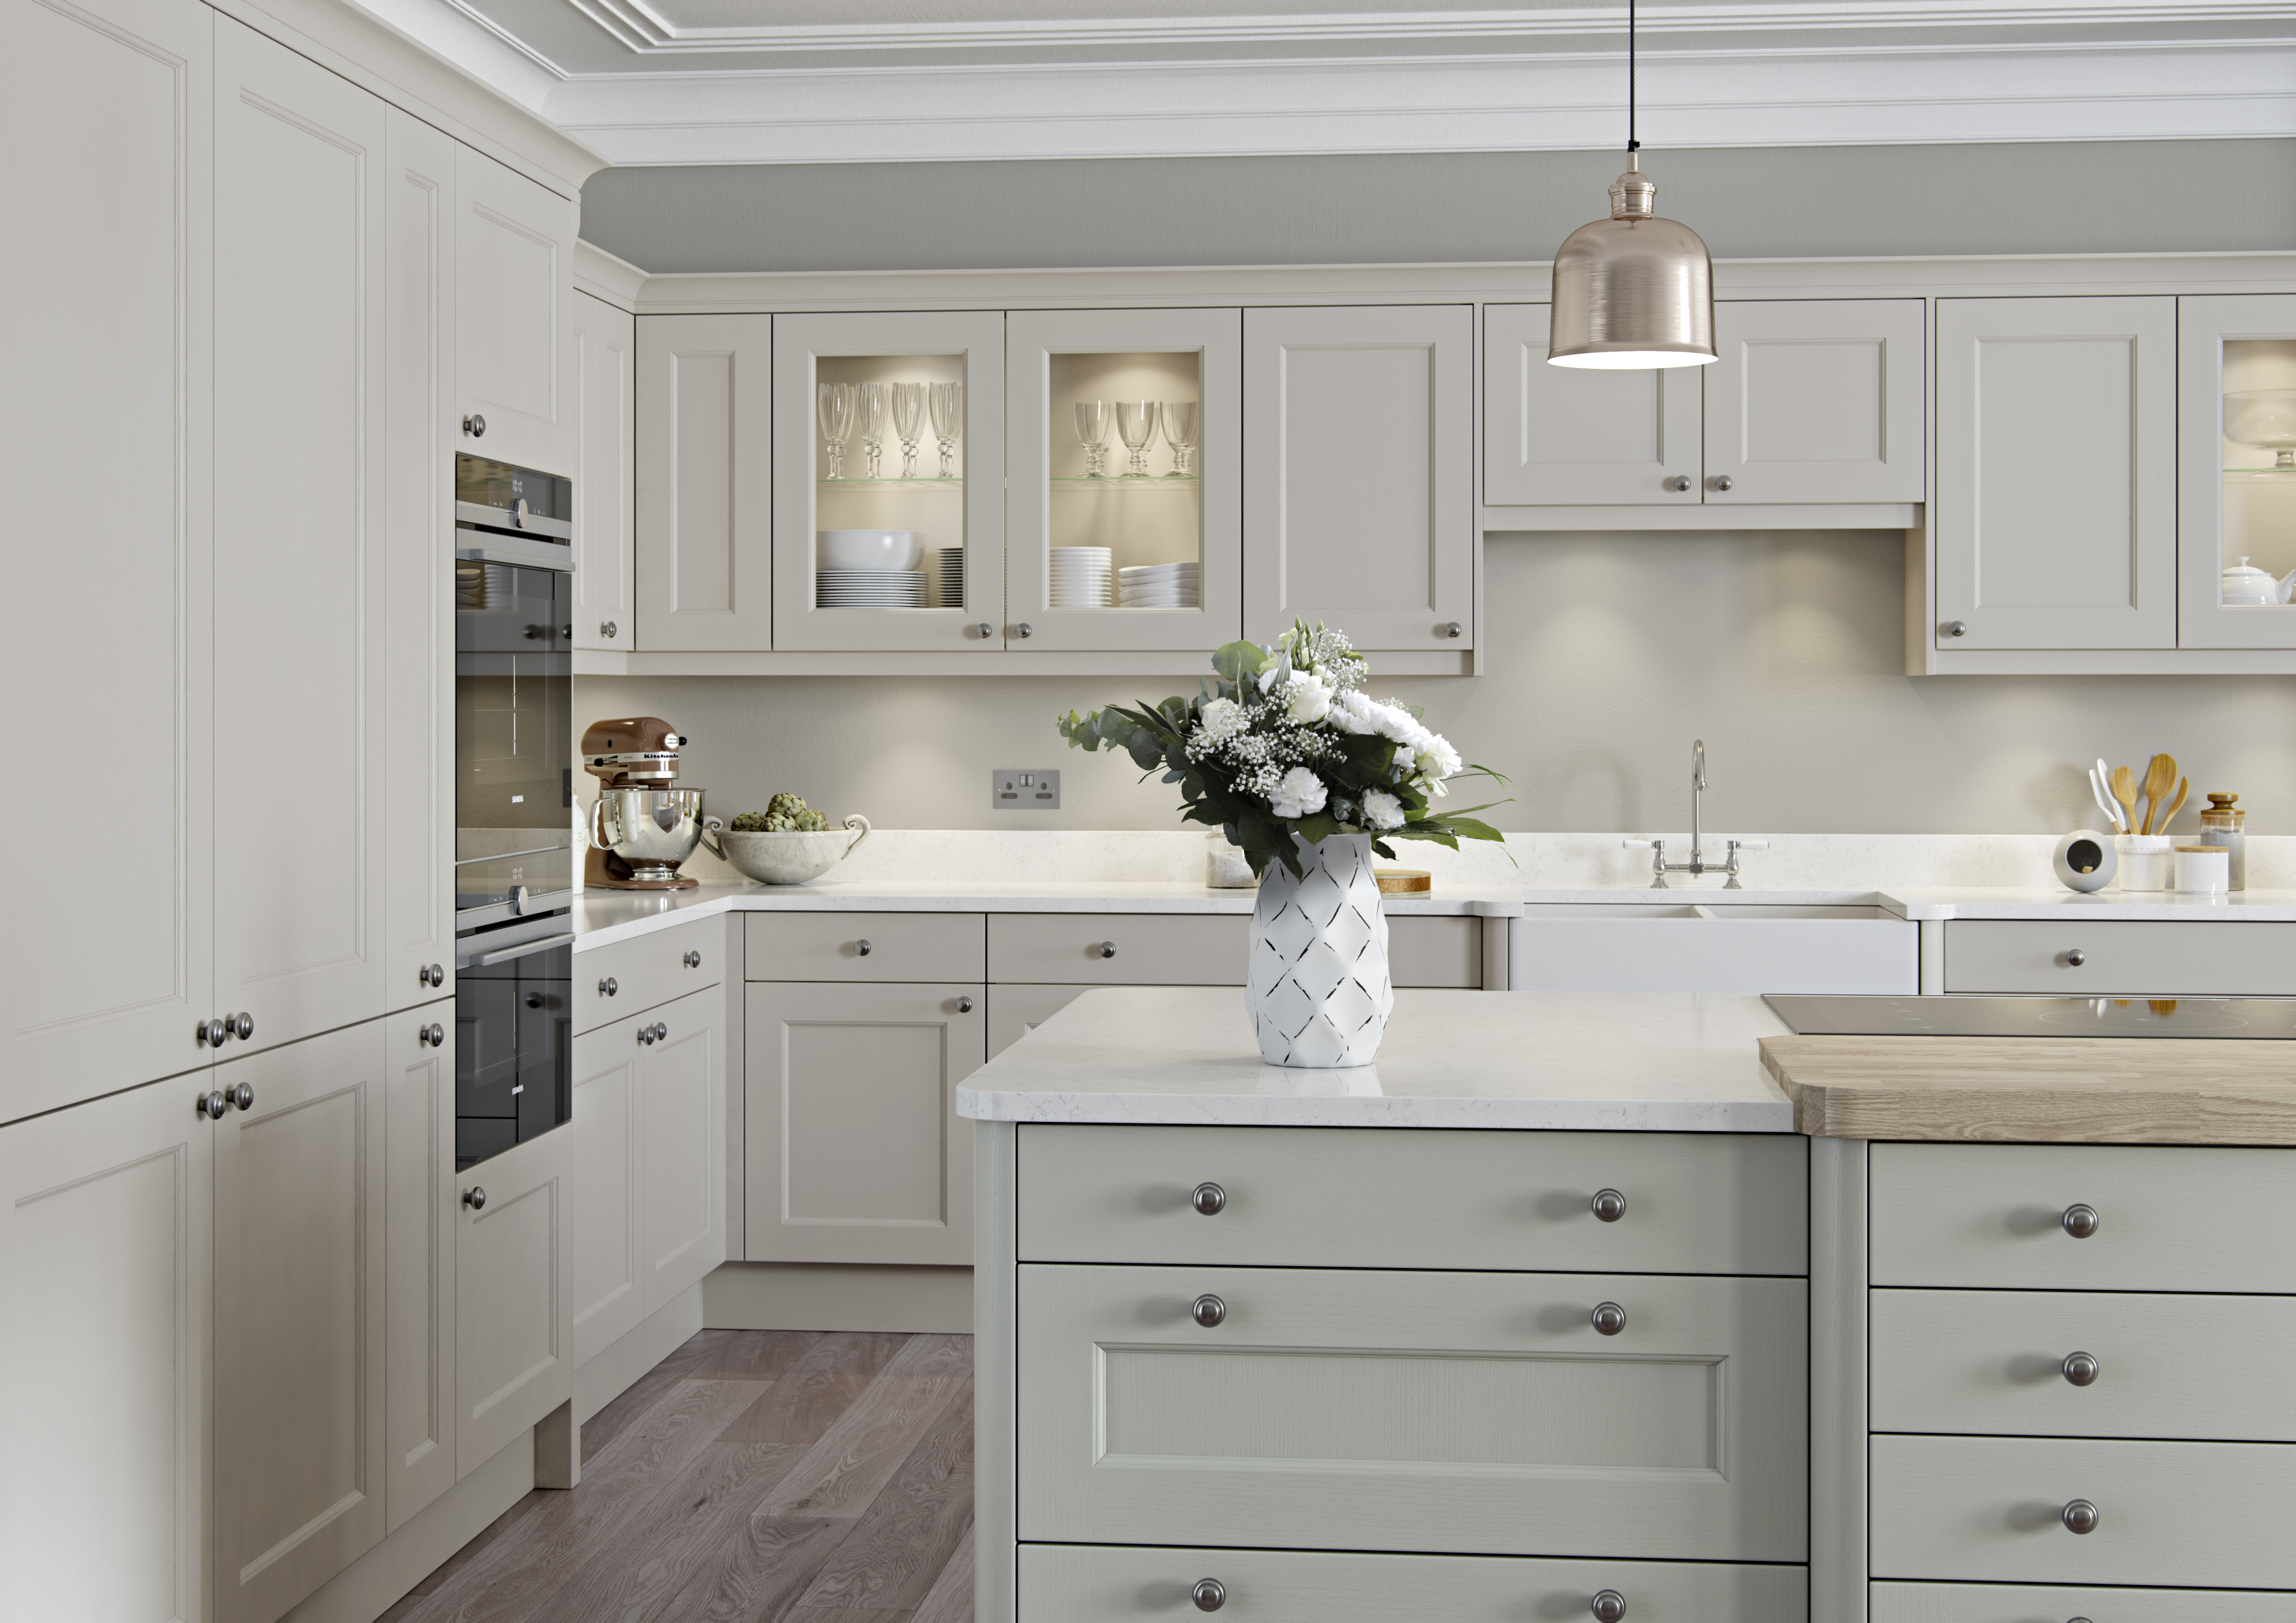 Ash Kitchen Cabinets Finsbury Painted Classic Kitchen Martha Mockford